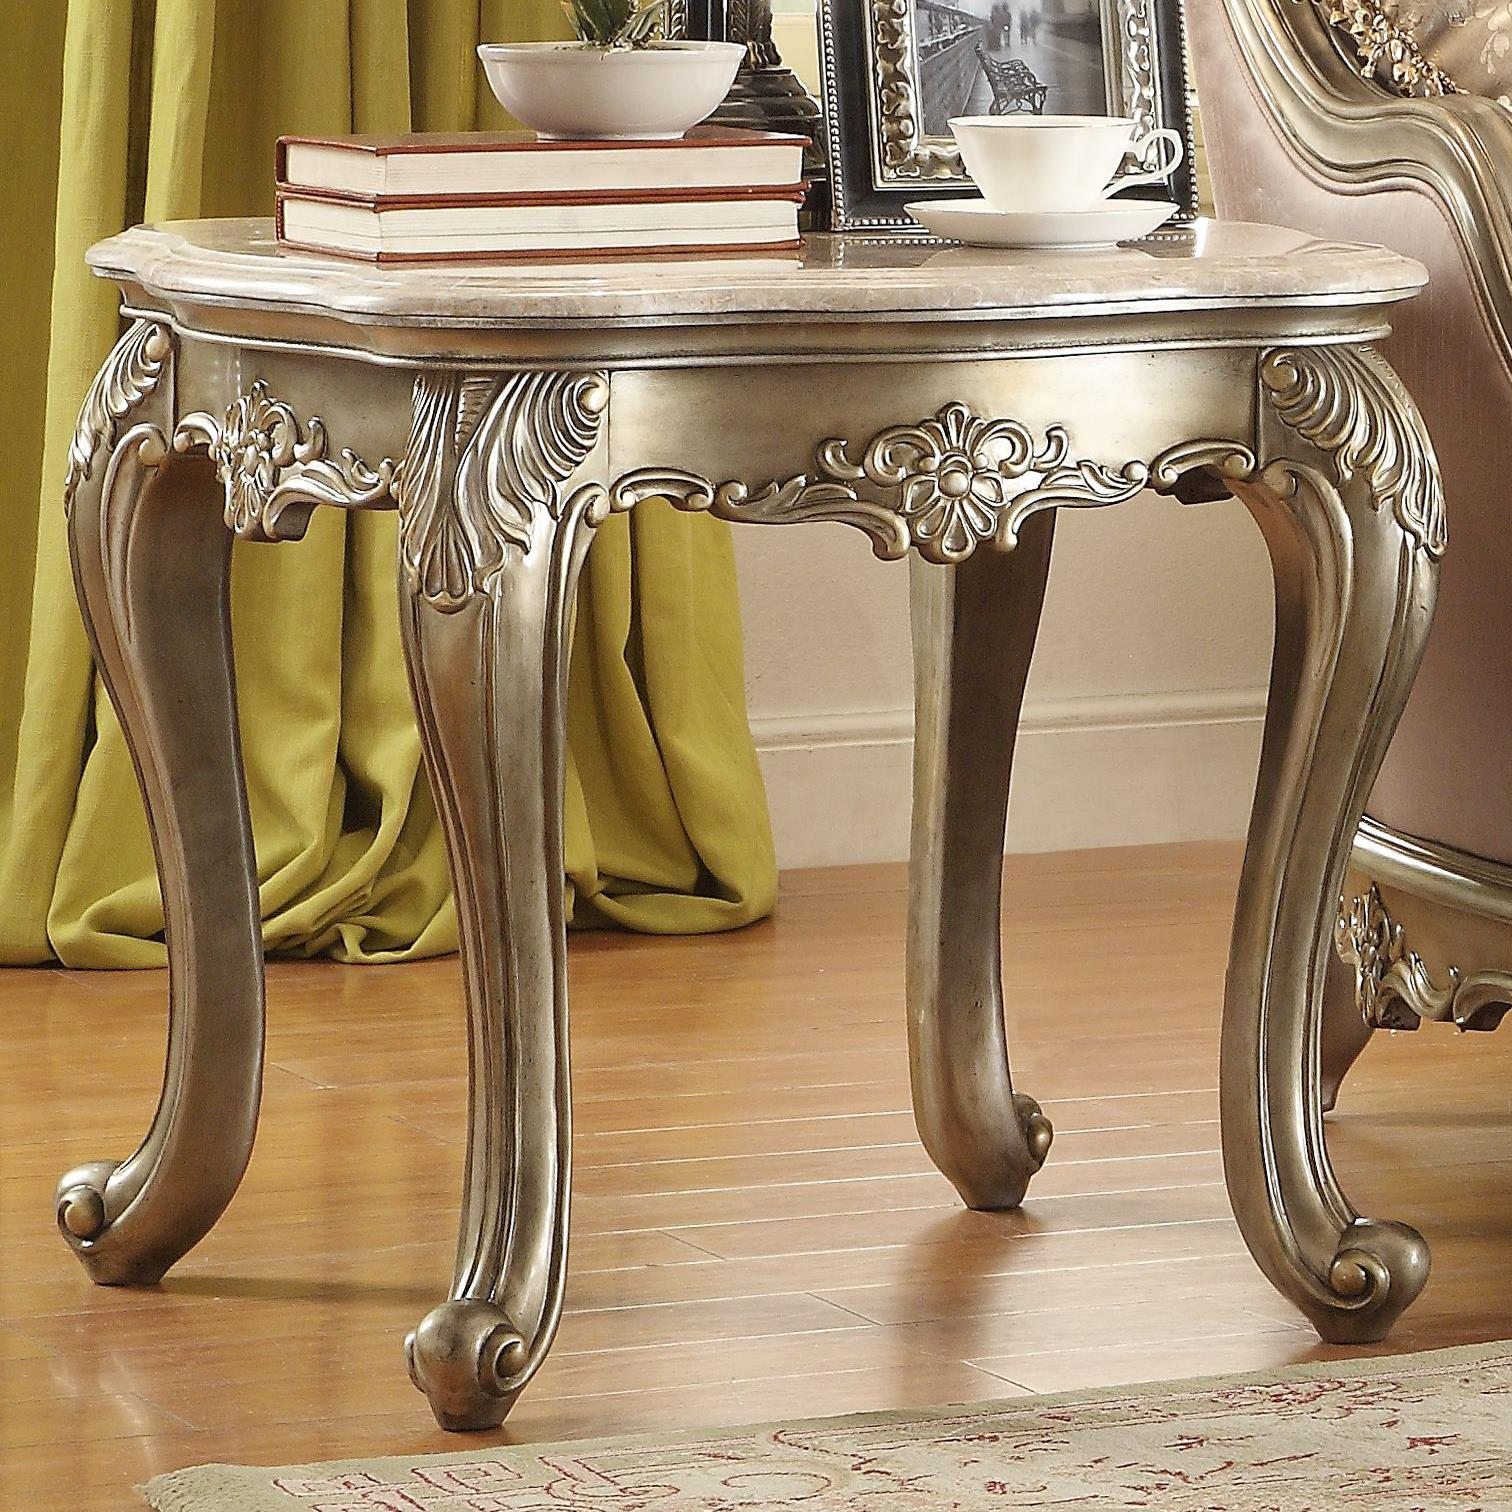 Homelegance Fiorella End Table - Item Number: 8412-04